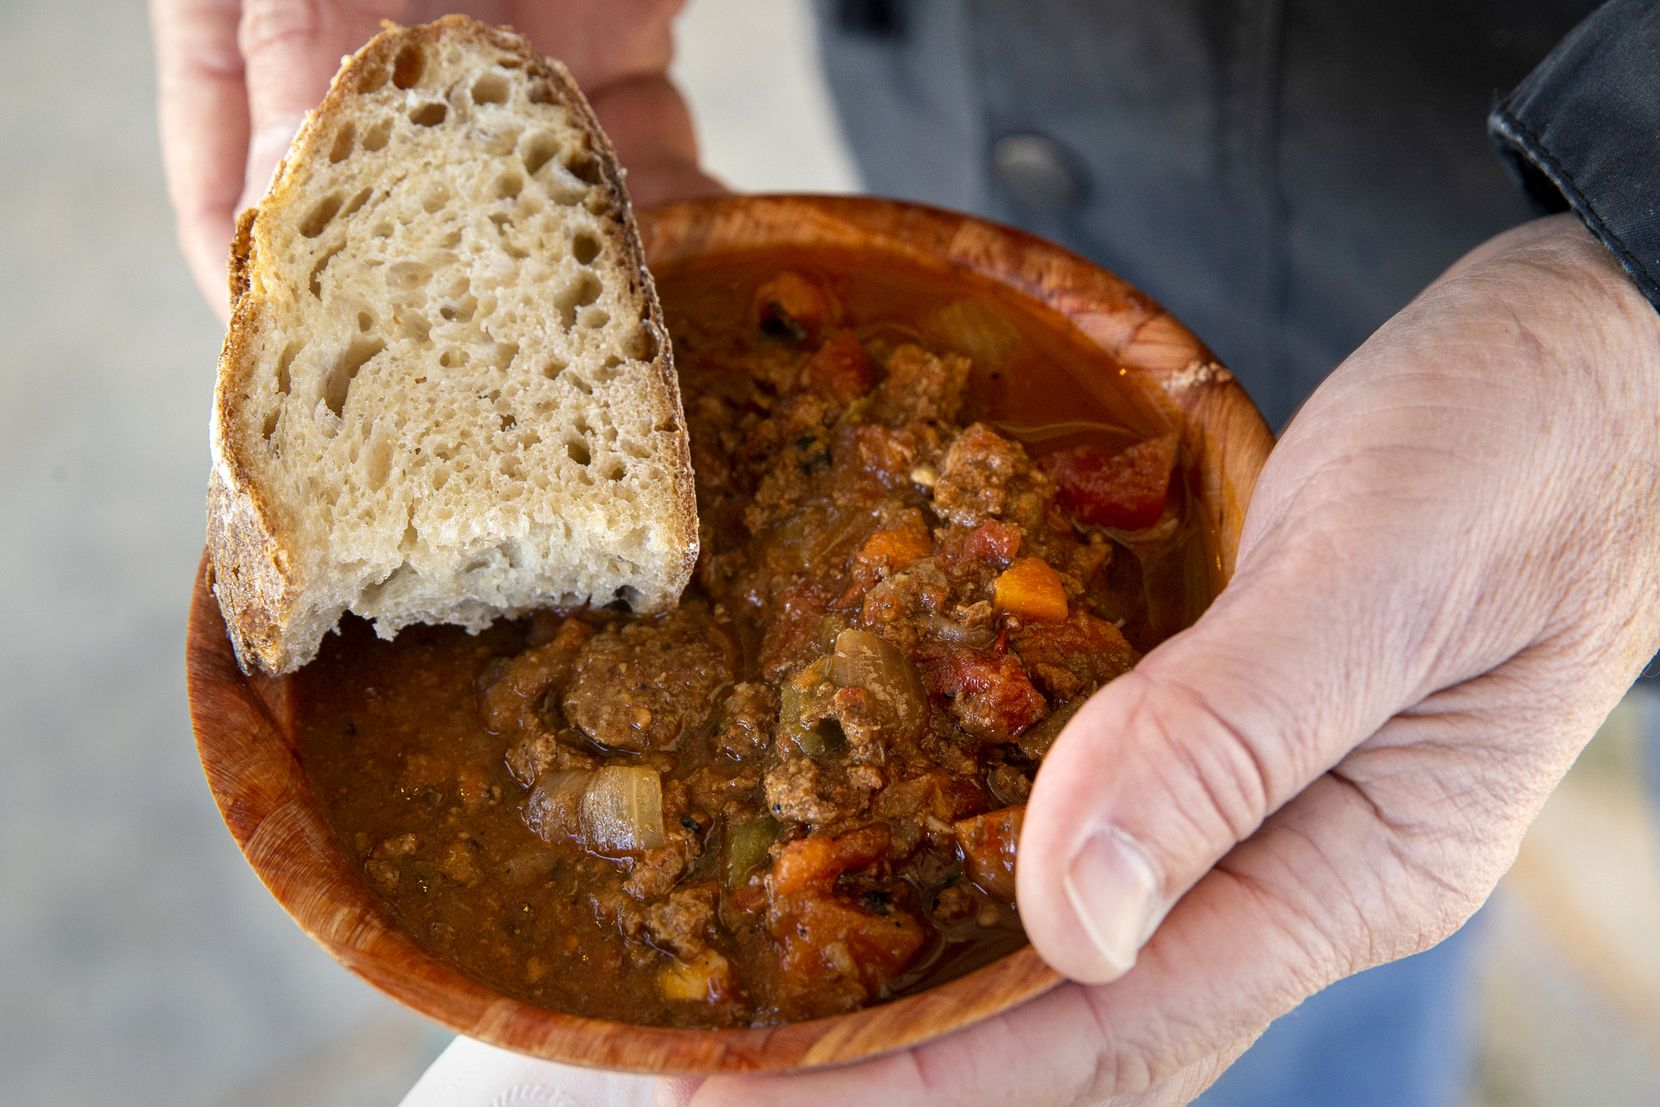 A man holds locally sourced bison chili provided to paying attendees of a bison field harvest event at Roam Ranch in Fredericksburg.